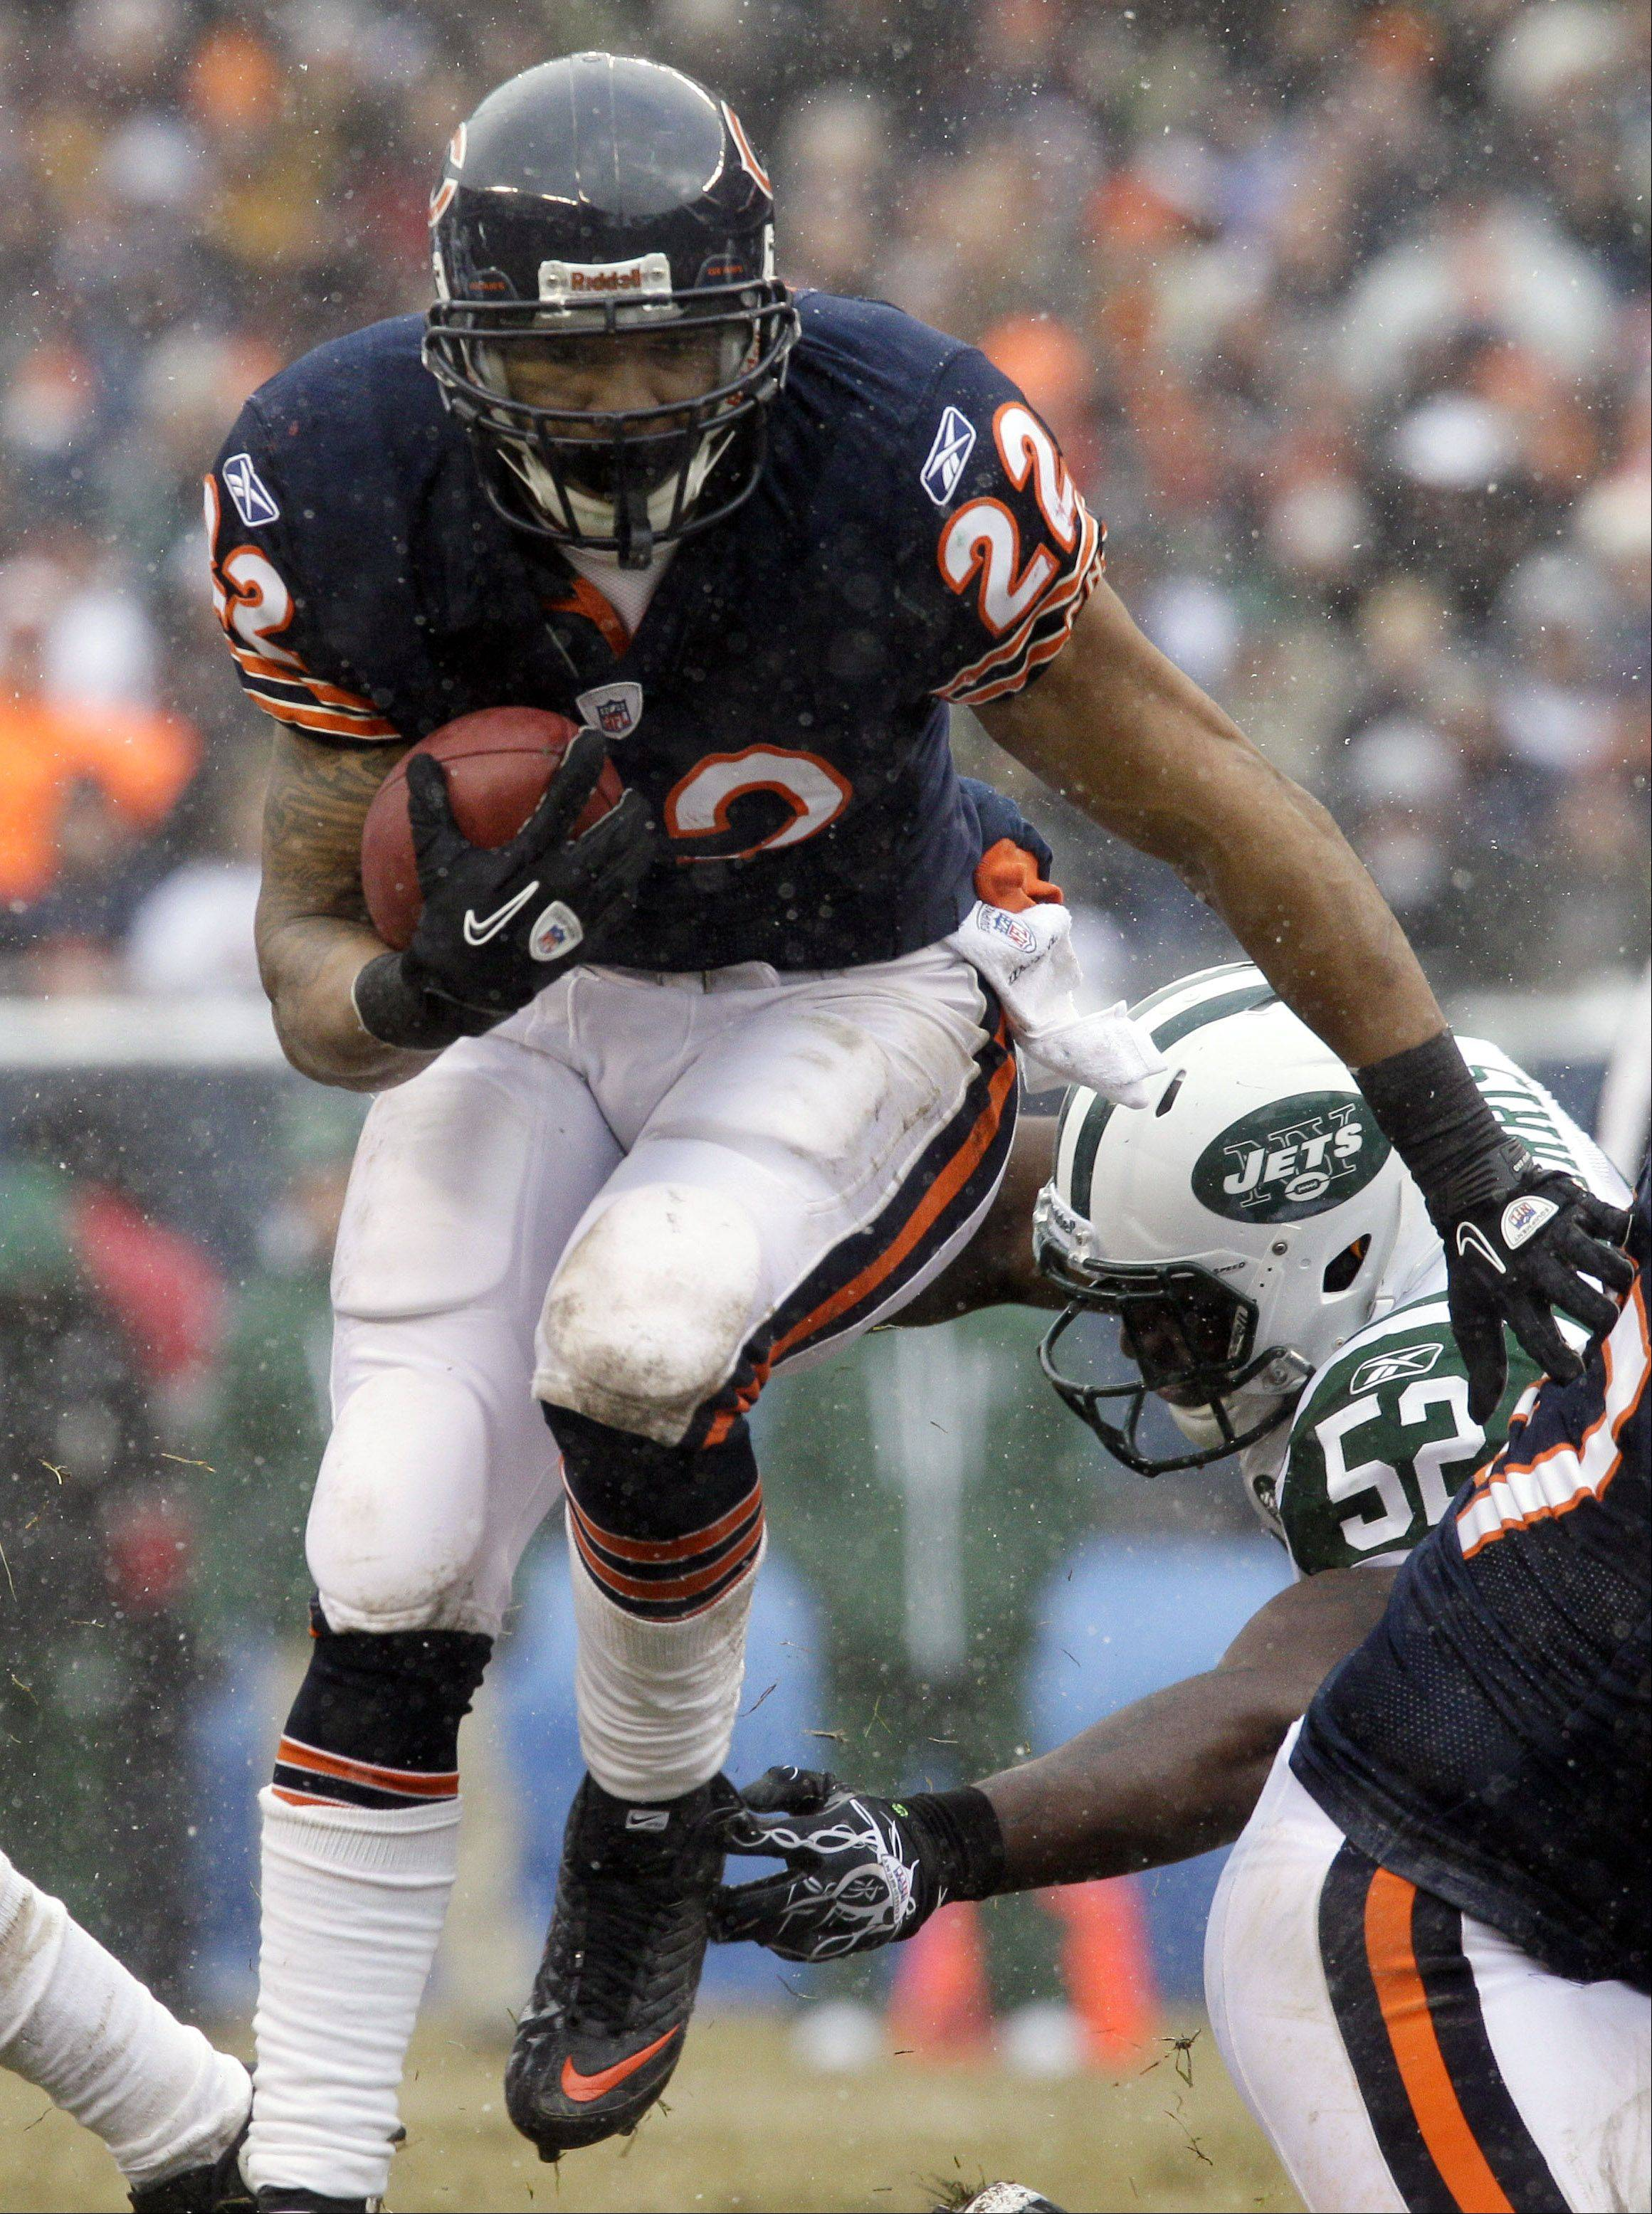 Bears running back Matt Forte gained a season-best 87 yards in 16 carries against the Steelers on Sunday night.